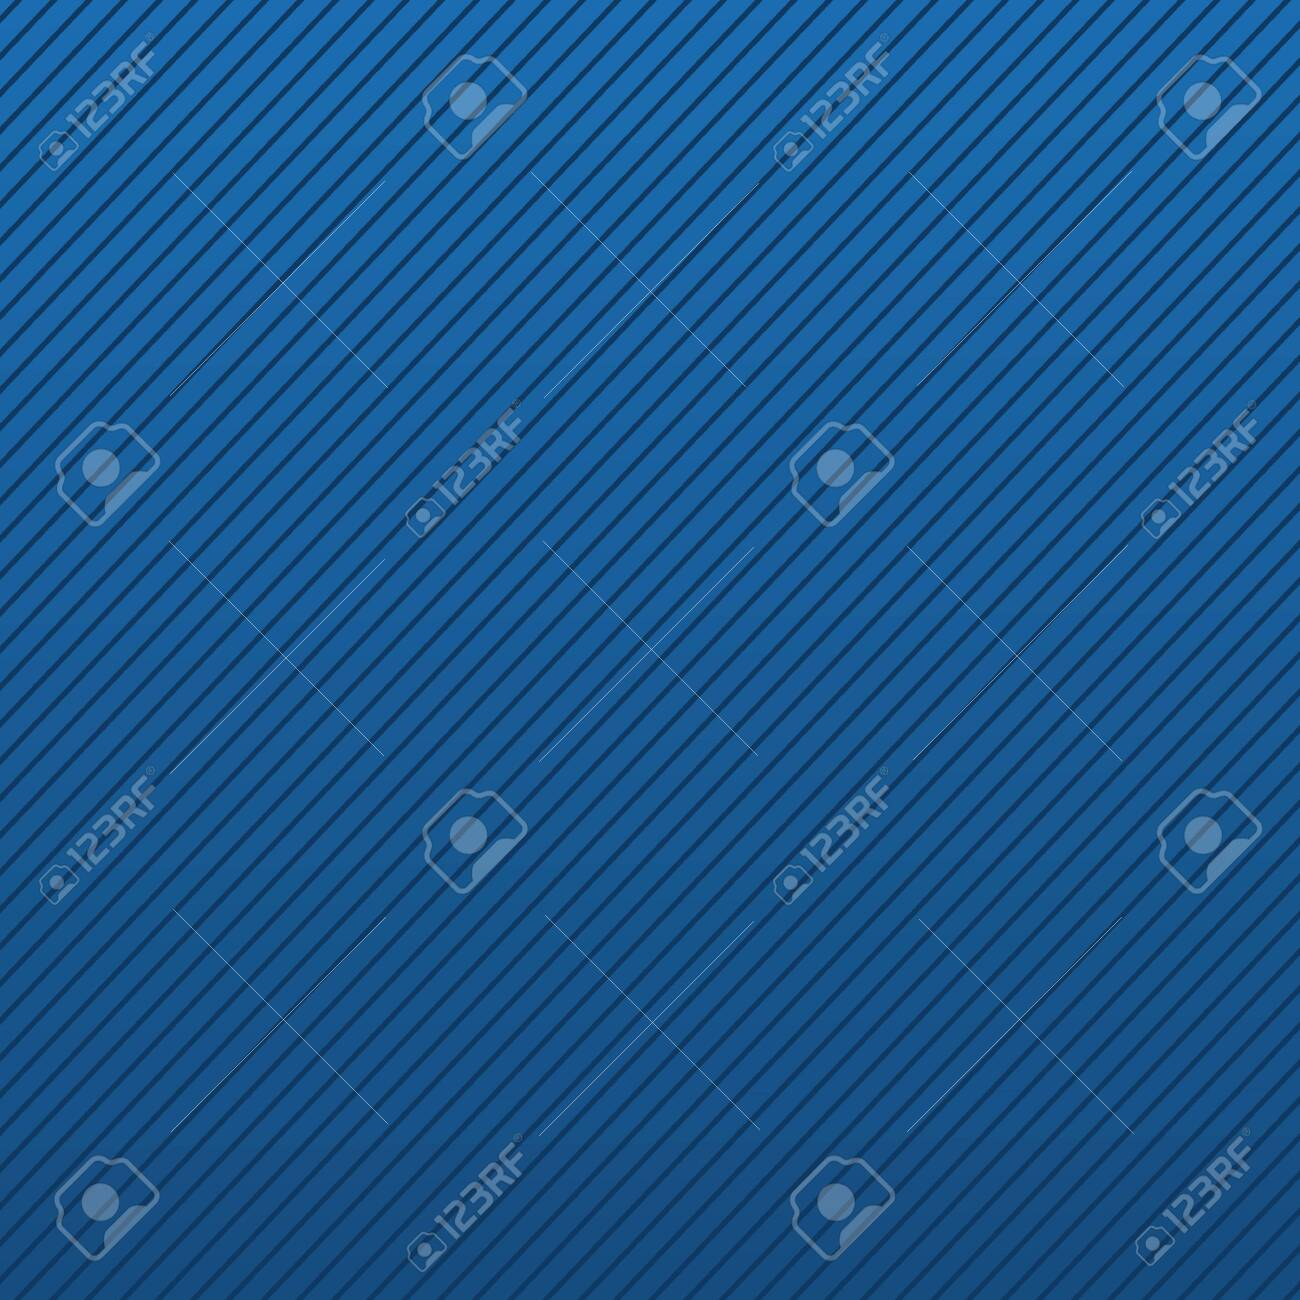 Blue Pattern With Diagonal Line Jeans Velvet Texture Graphic Royalty Free Cliparts Vectors And Stock Illustration Image 147345016